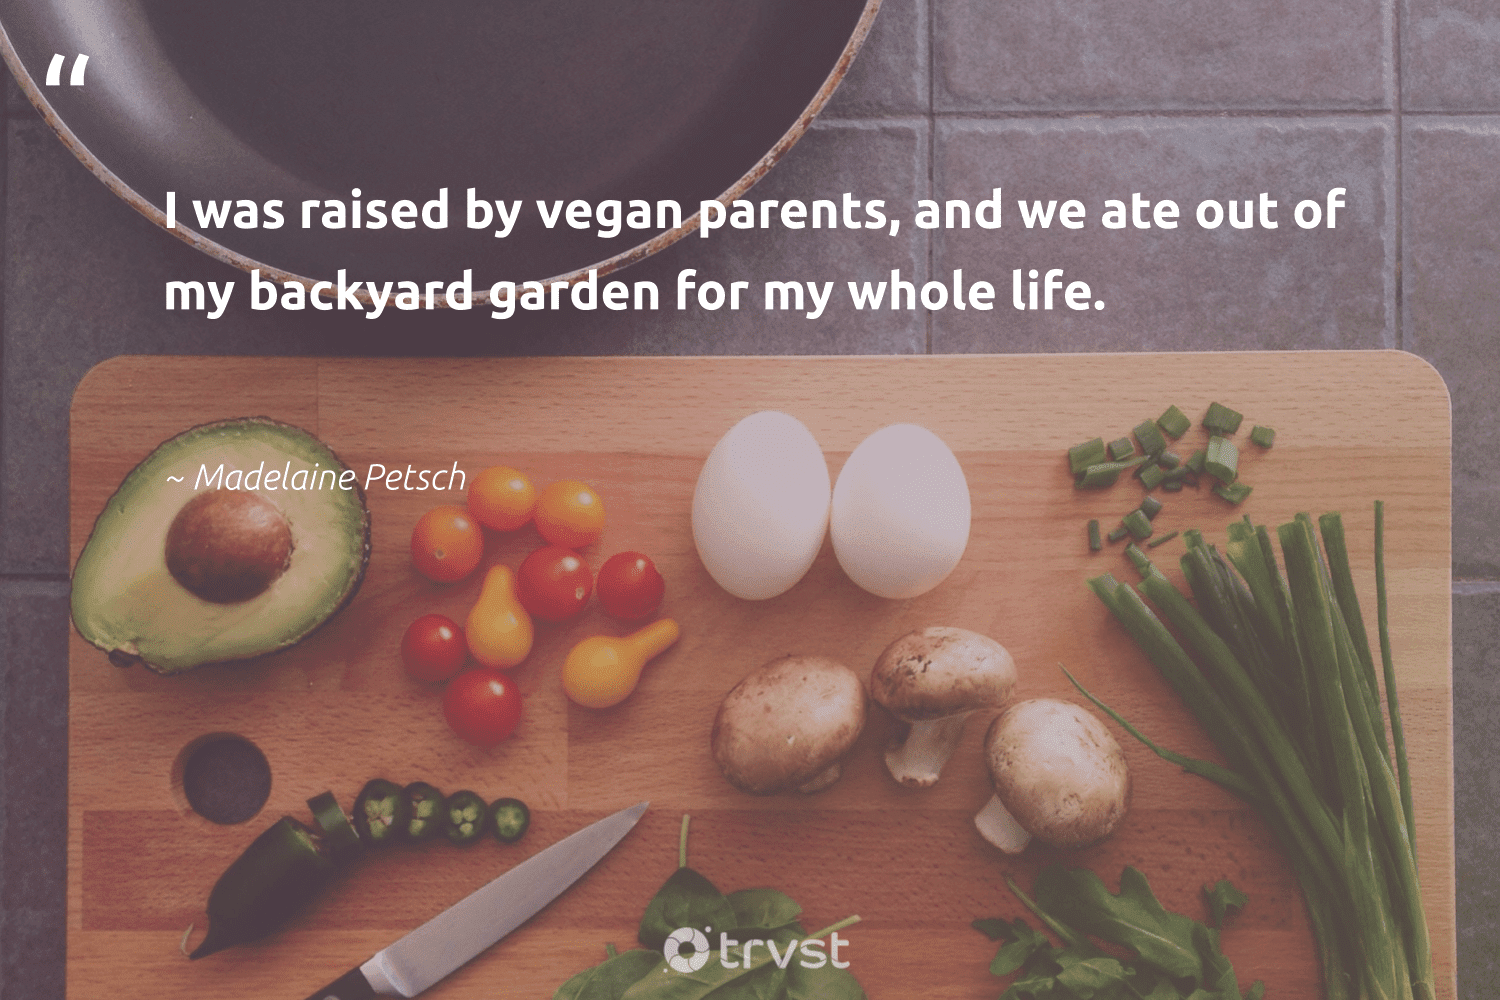 """""""I was raised by vegan parents, and we ate out of my backyard garden for my whole life.""""  - Madelaine Petsch #trvst #quotes #vegan #whatveganseat #sustainable #bethechange #takeaction #veganfood #greenliving #sustainability #thinkgreen #vegetarian"""